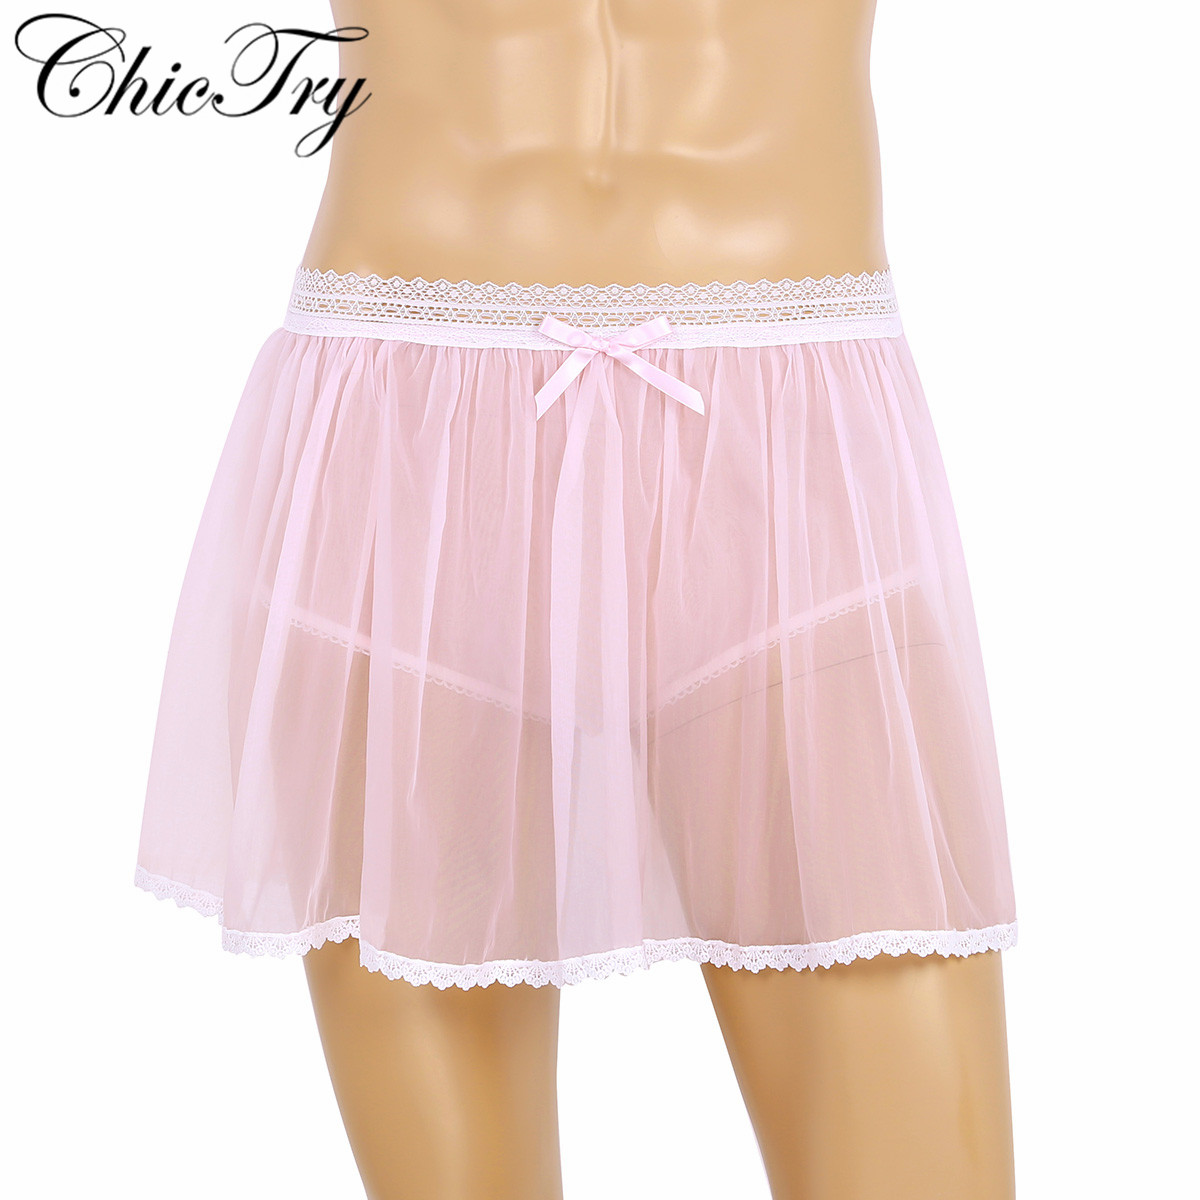 <font><b>Sexy</b></font> Male <font><b>Mens</b></font> Adults <font><b>Lingerie</b></font> Elastic Lace Waist See Through Sheer Ruffled Sissy Crossdress Short Mini Skirt Tulle Panties image